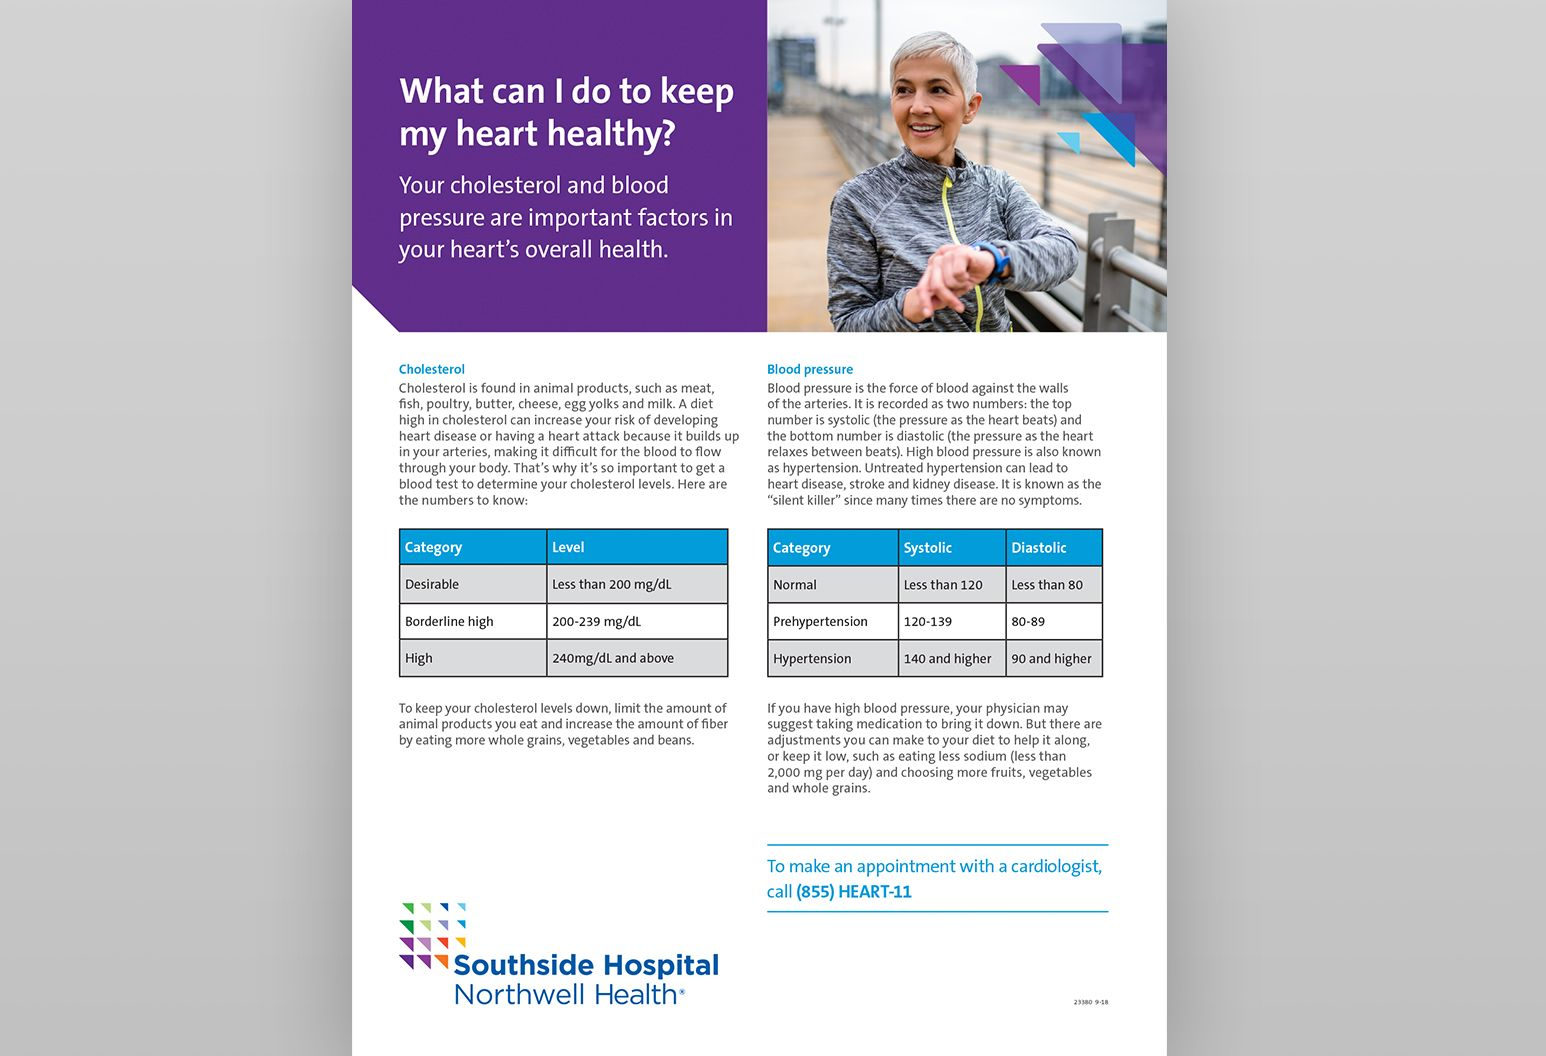 "Thumbnail of PDF titled ""What can I do to keep my heart healthy?"" There is a photo of an older lady with short gray hair in exercise clothes on a boardwalk on the PDF."